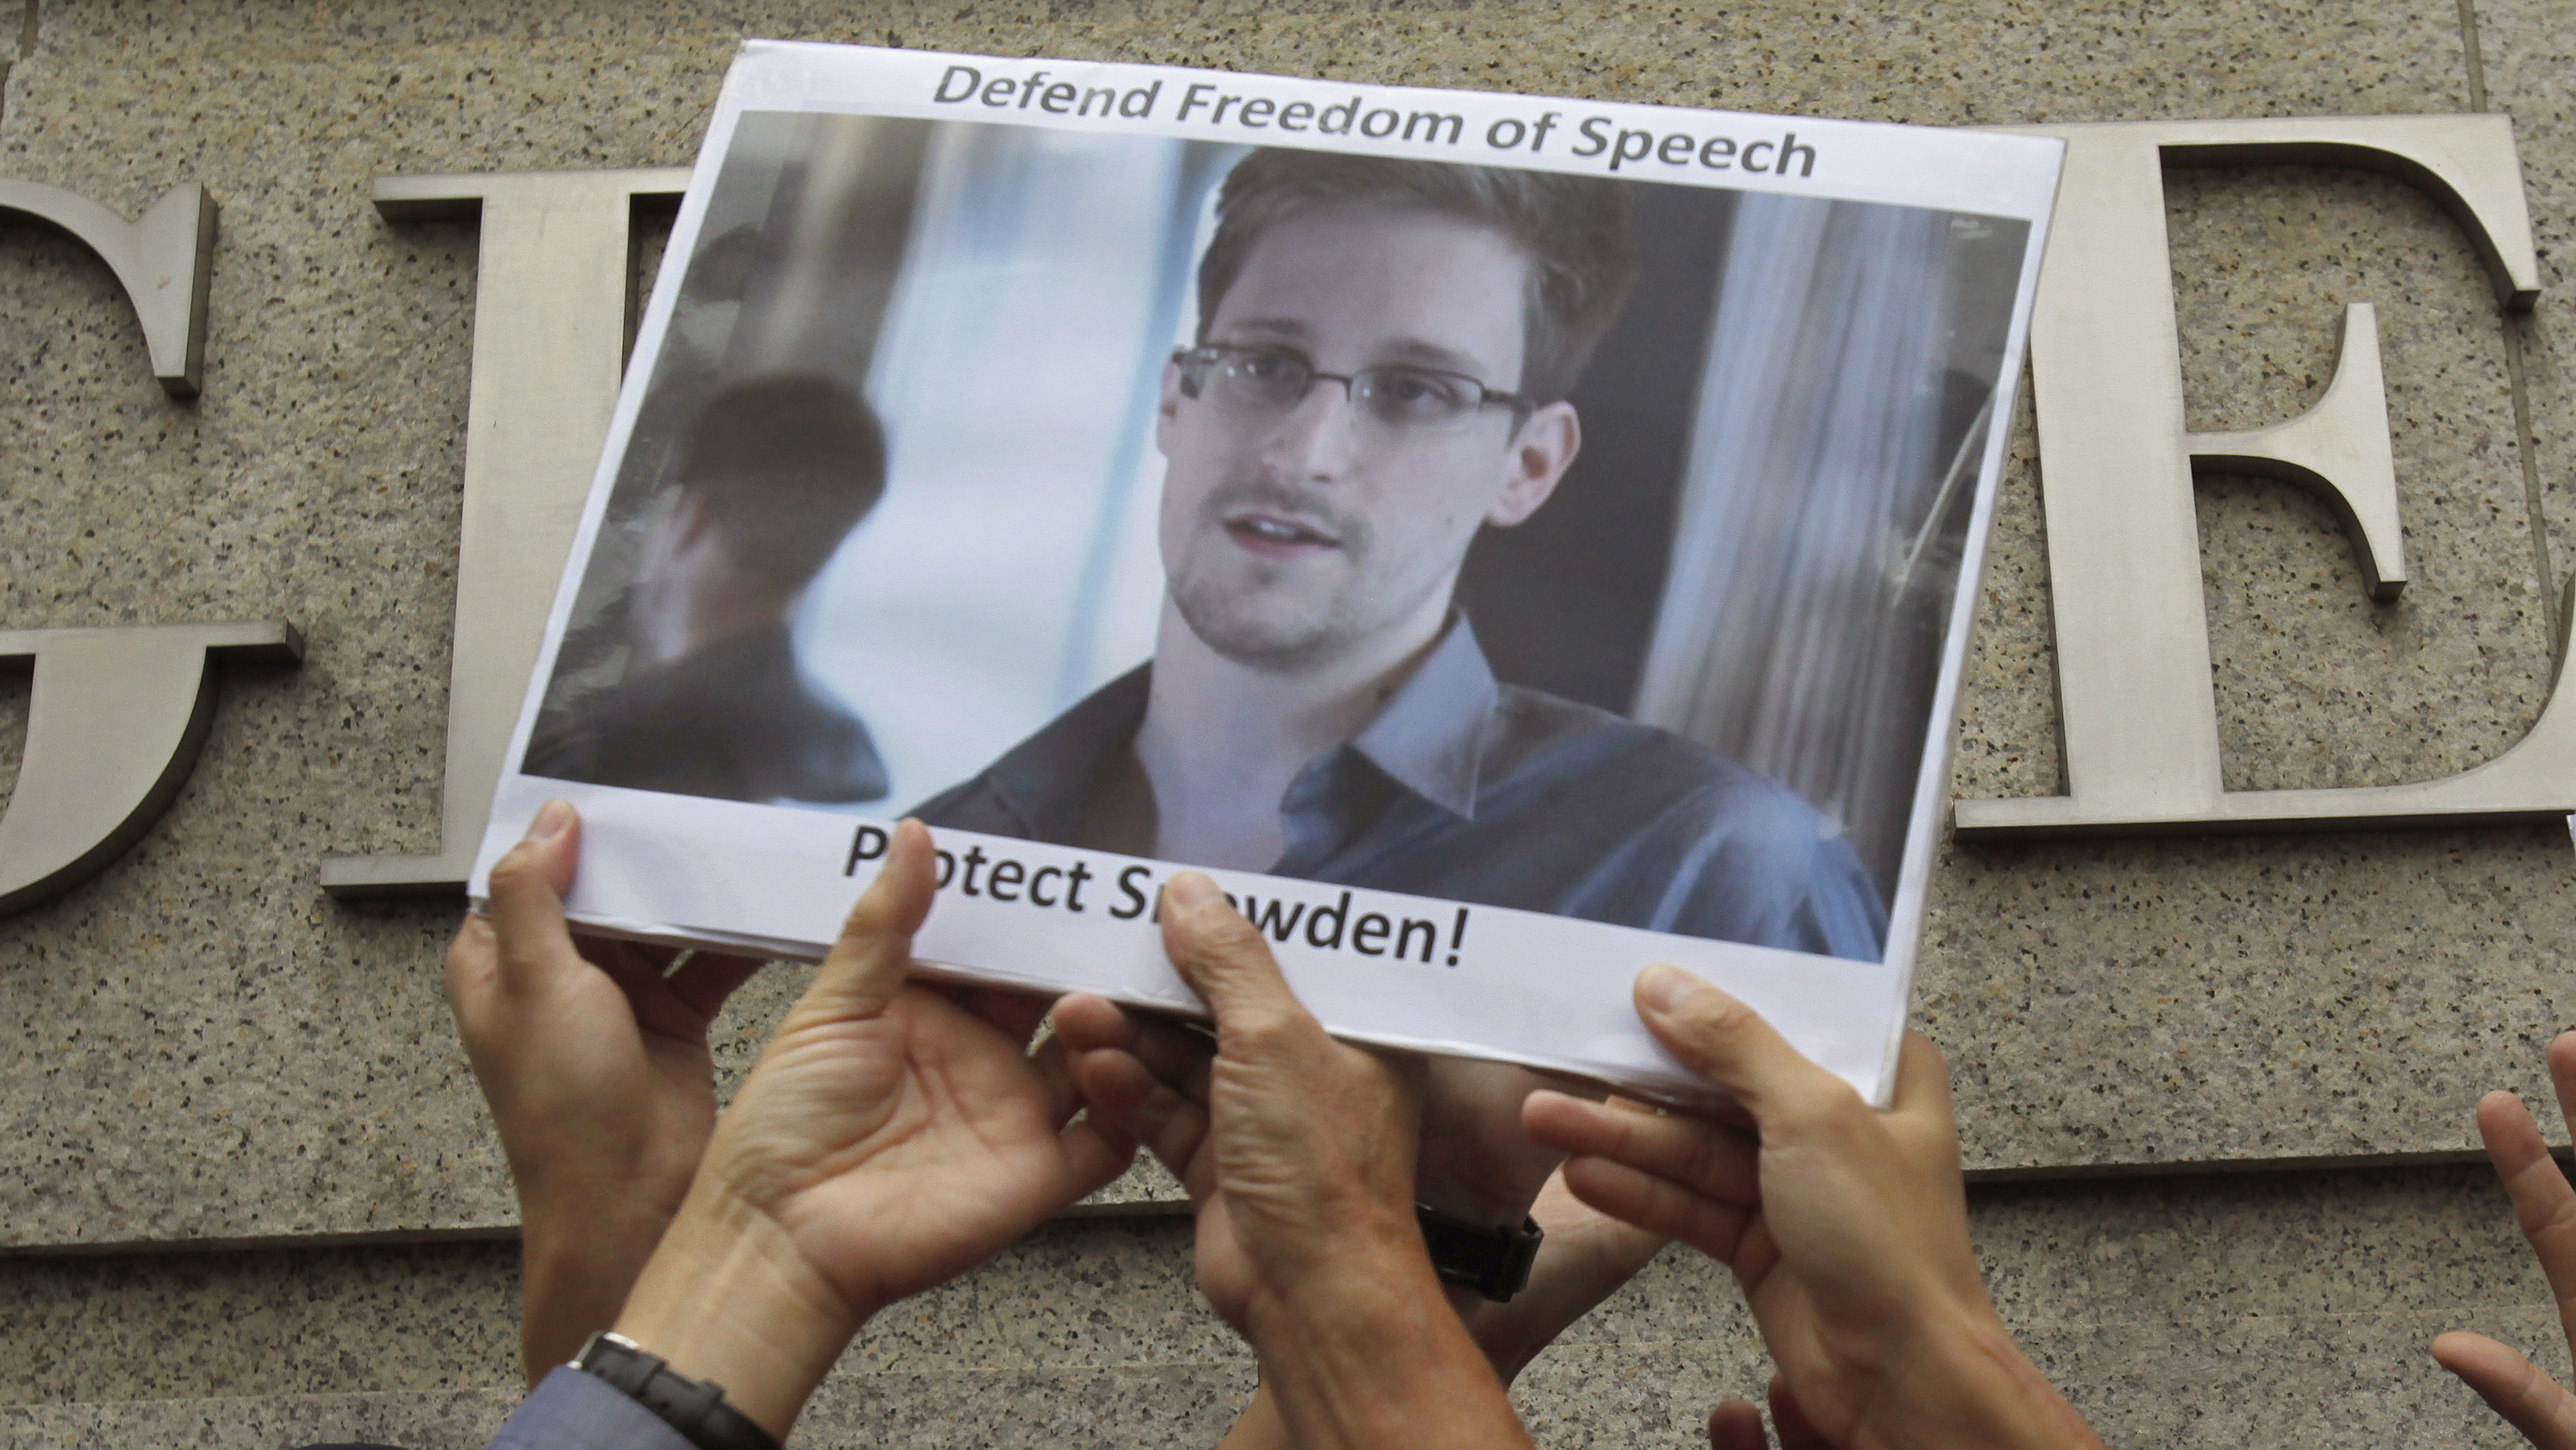 Photo of Edward Snowden being held aloft at a protest.